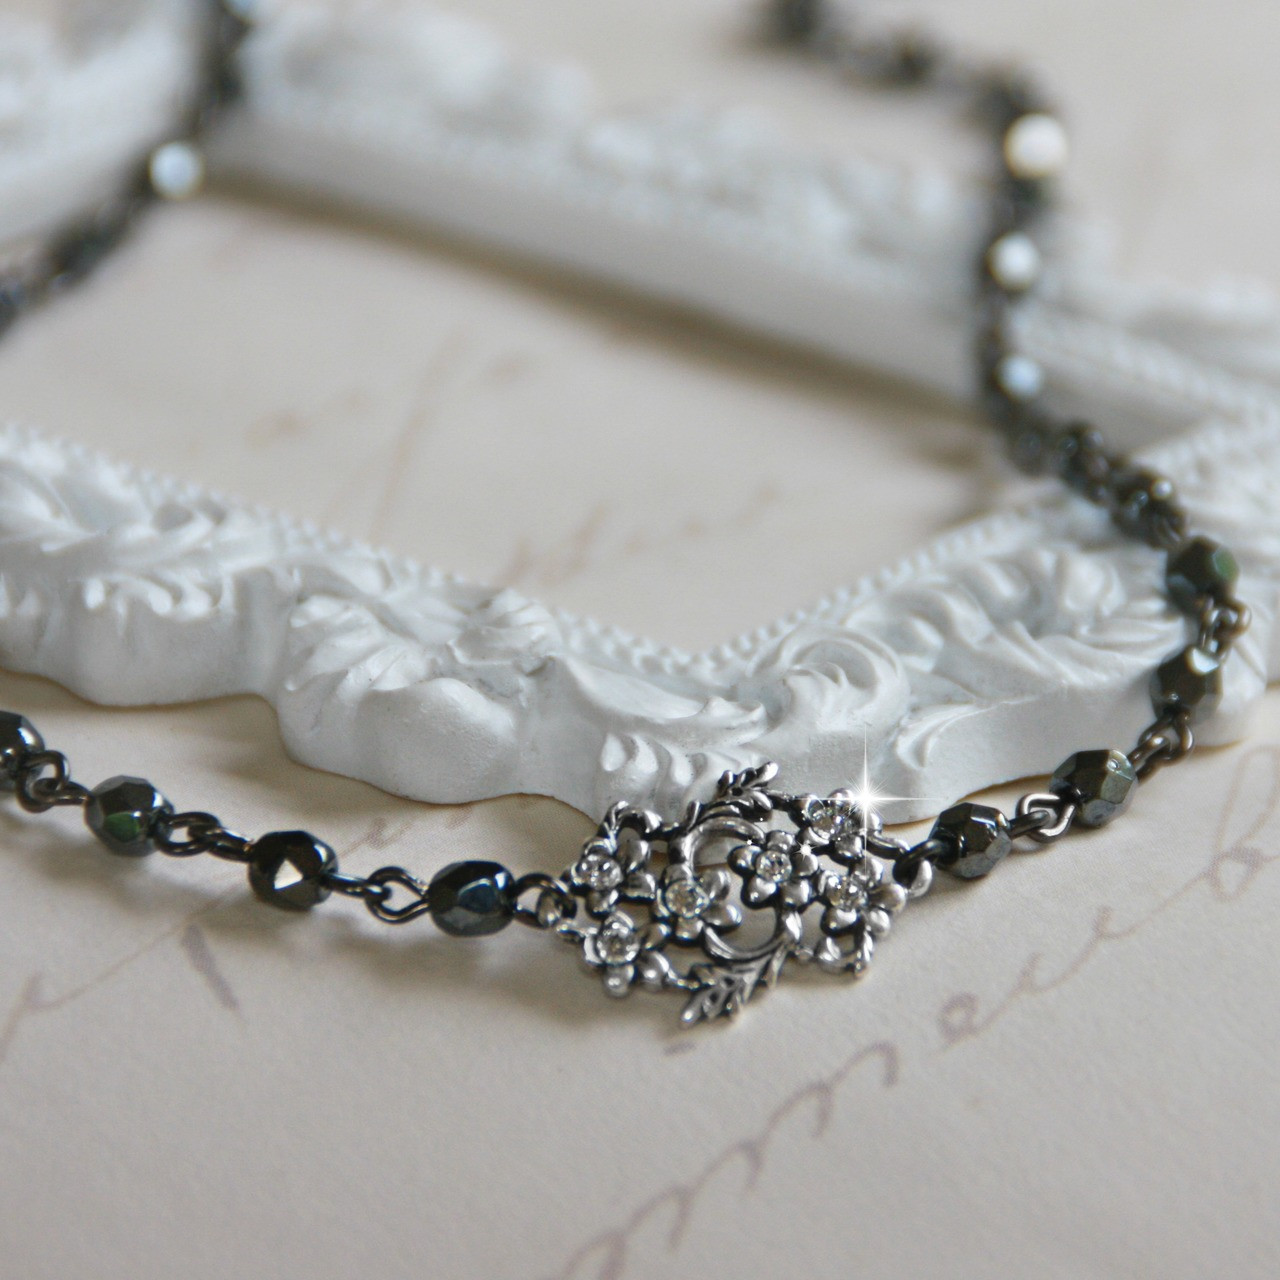 CH-21  Hematite Beautiful Link Chain with Crystal filled Center Choker